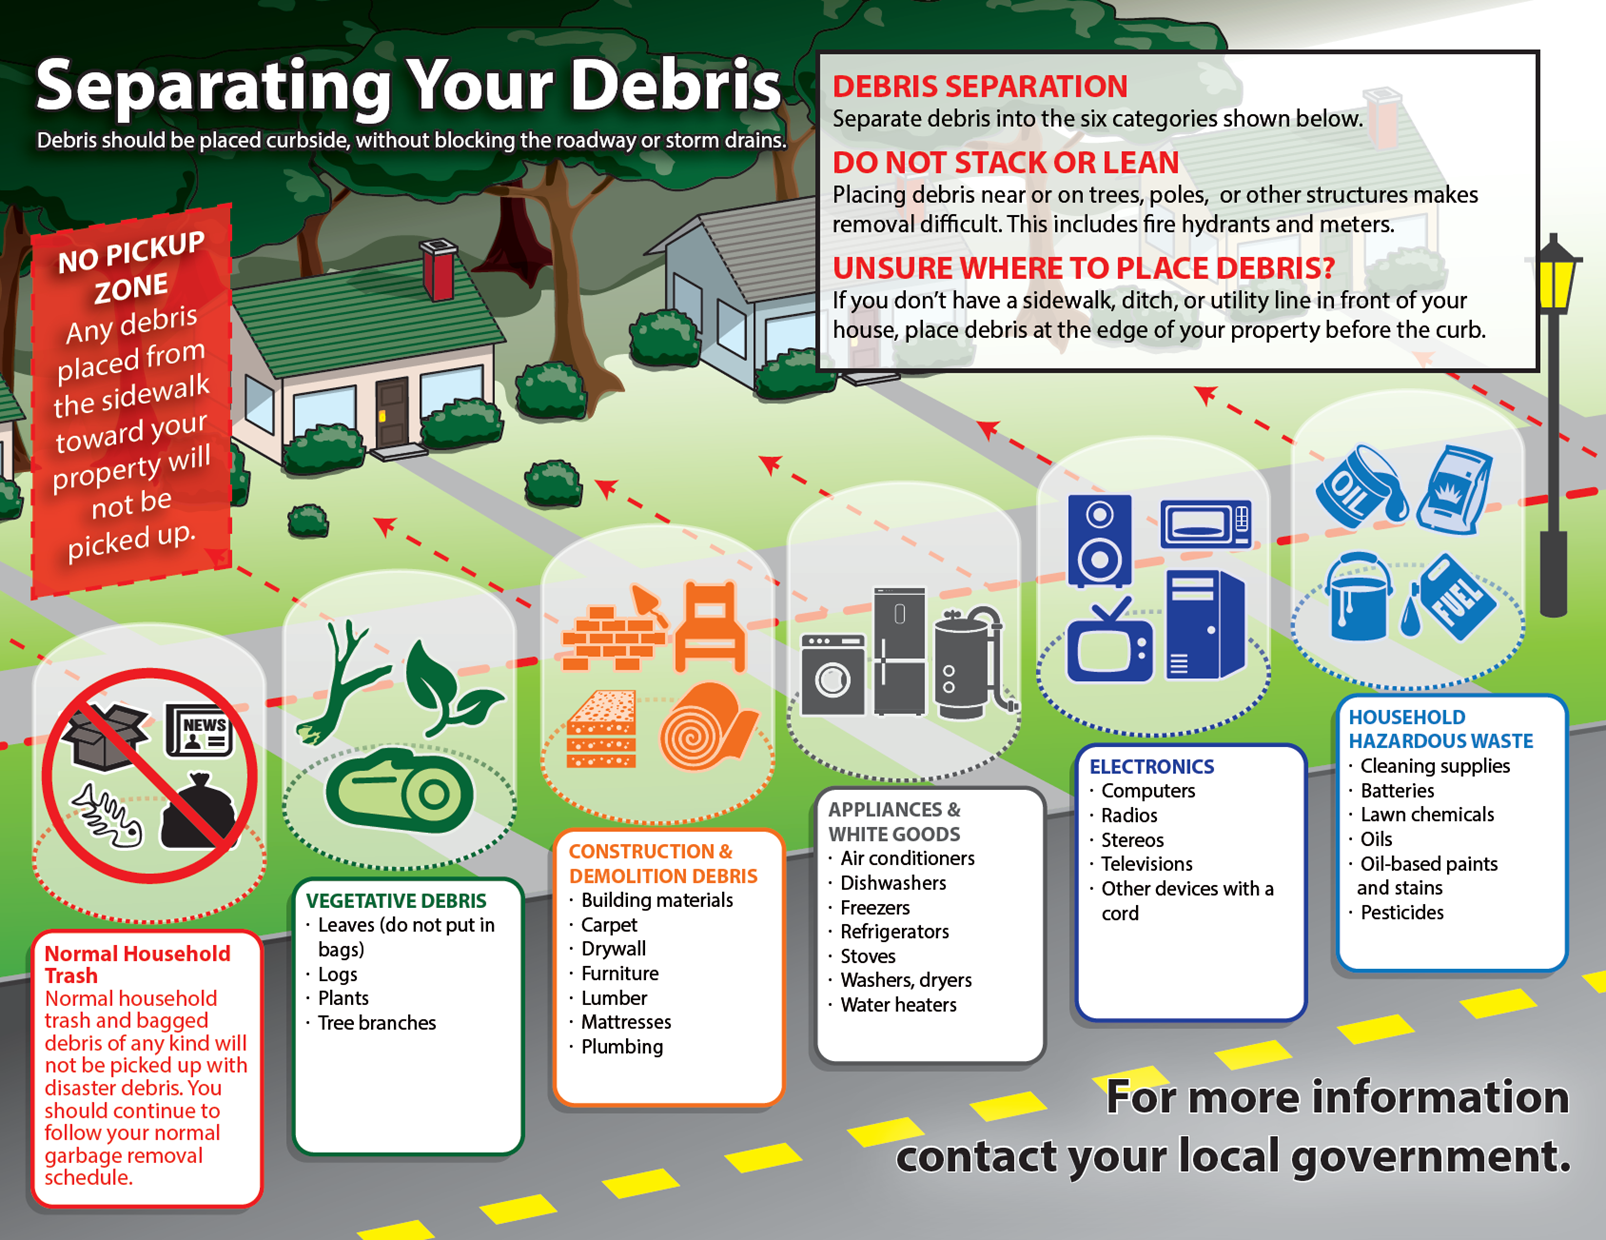 Separating Your Debris Infographic - City of Lakeland